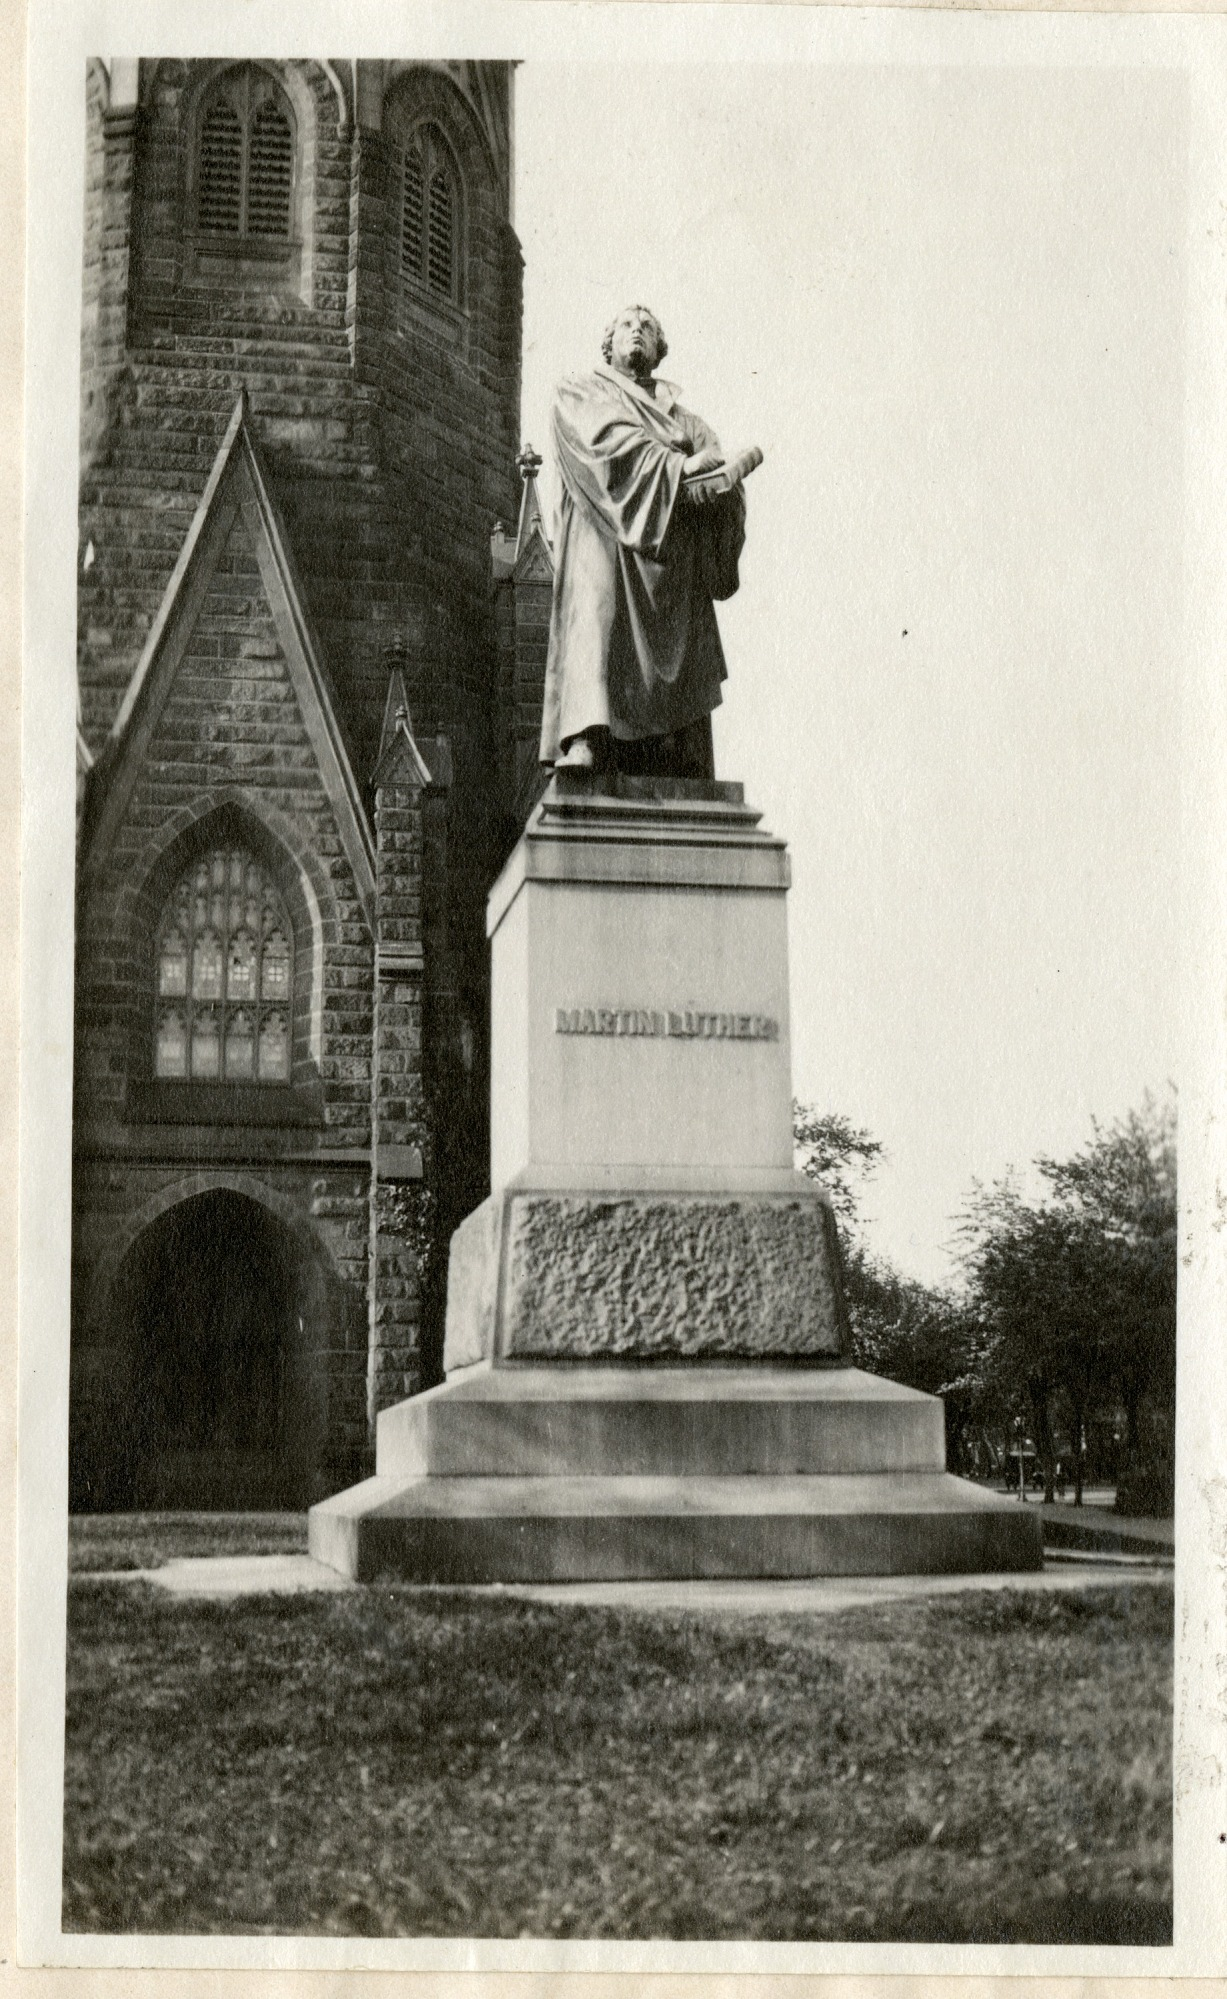 Statue of Martin Luther, 1919, Smithsonian Institution Archives, SIA RU007355 [SIA2010-2032].